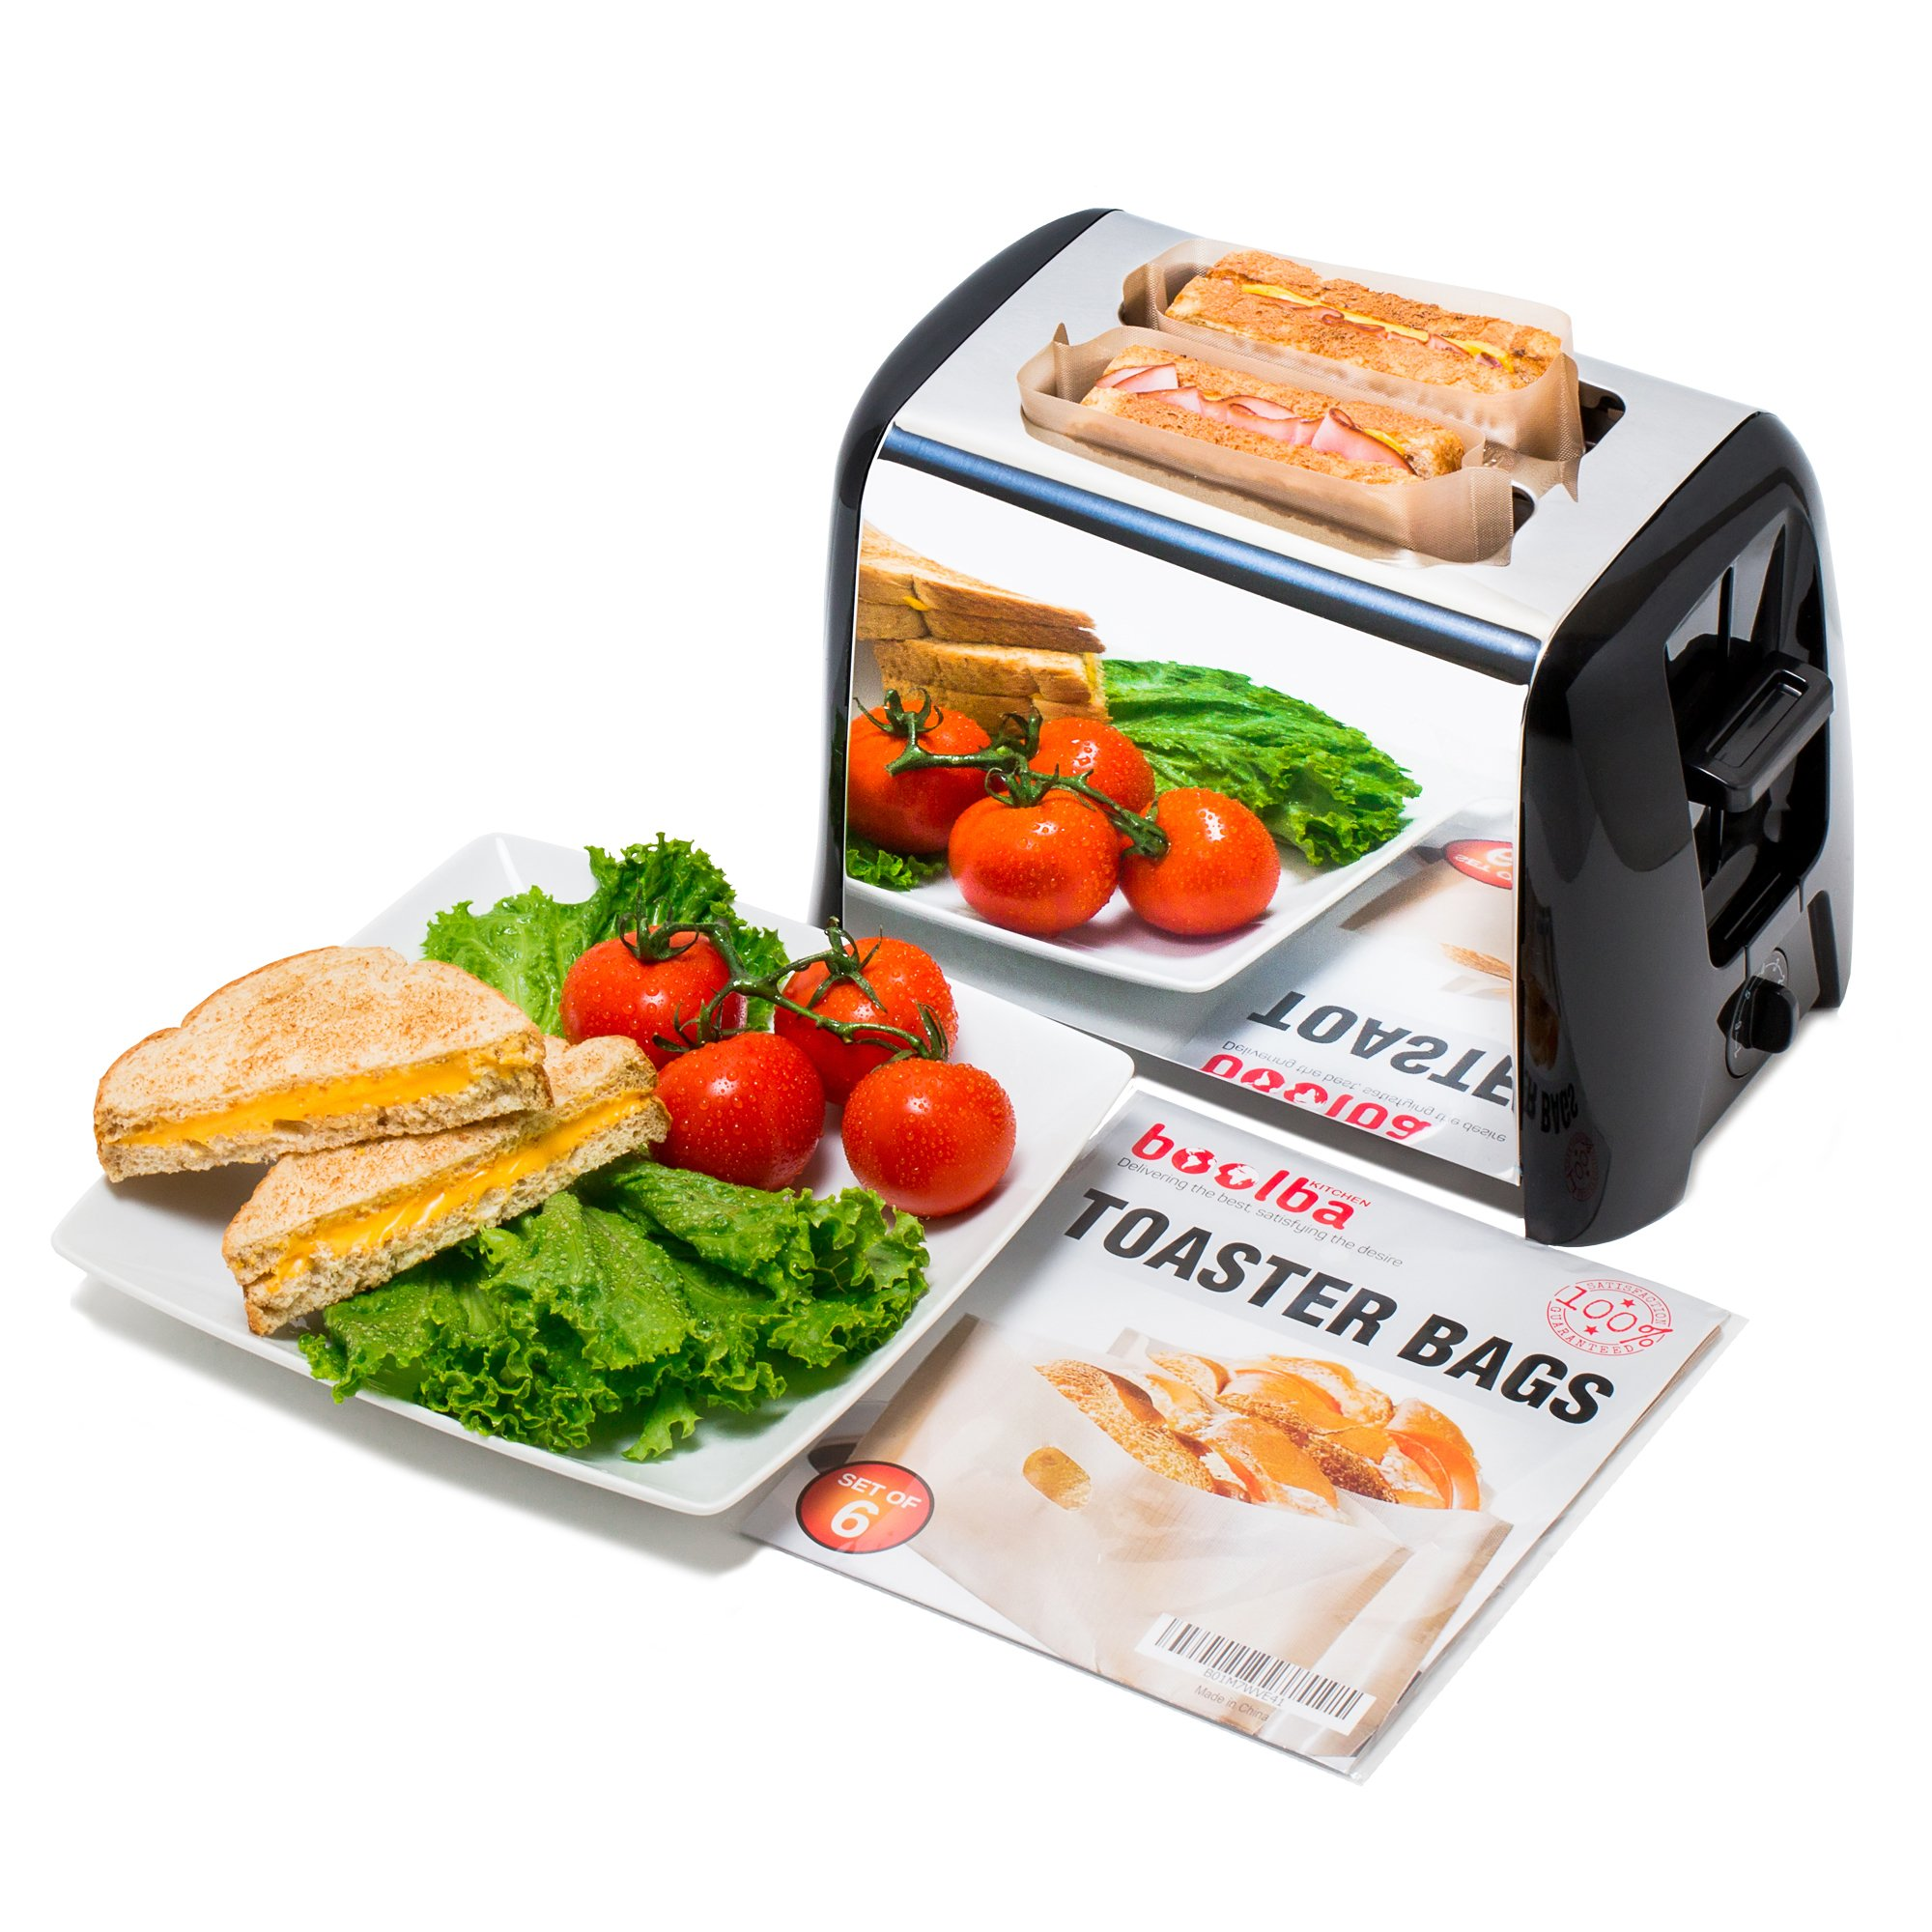 Toaster Bags (Set of 6) by Boolba 100% Non Stick and Reusable Easy To Clean Perfect For Sandwiches Hot Dogs Chicken Fish Vegetables Panini & Garlic Toast by boolba KITCHEN (Image #2)